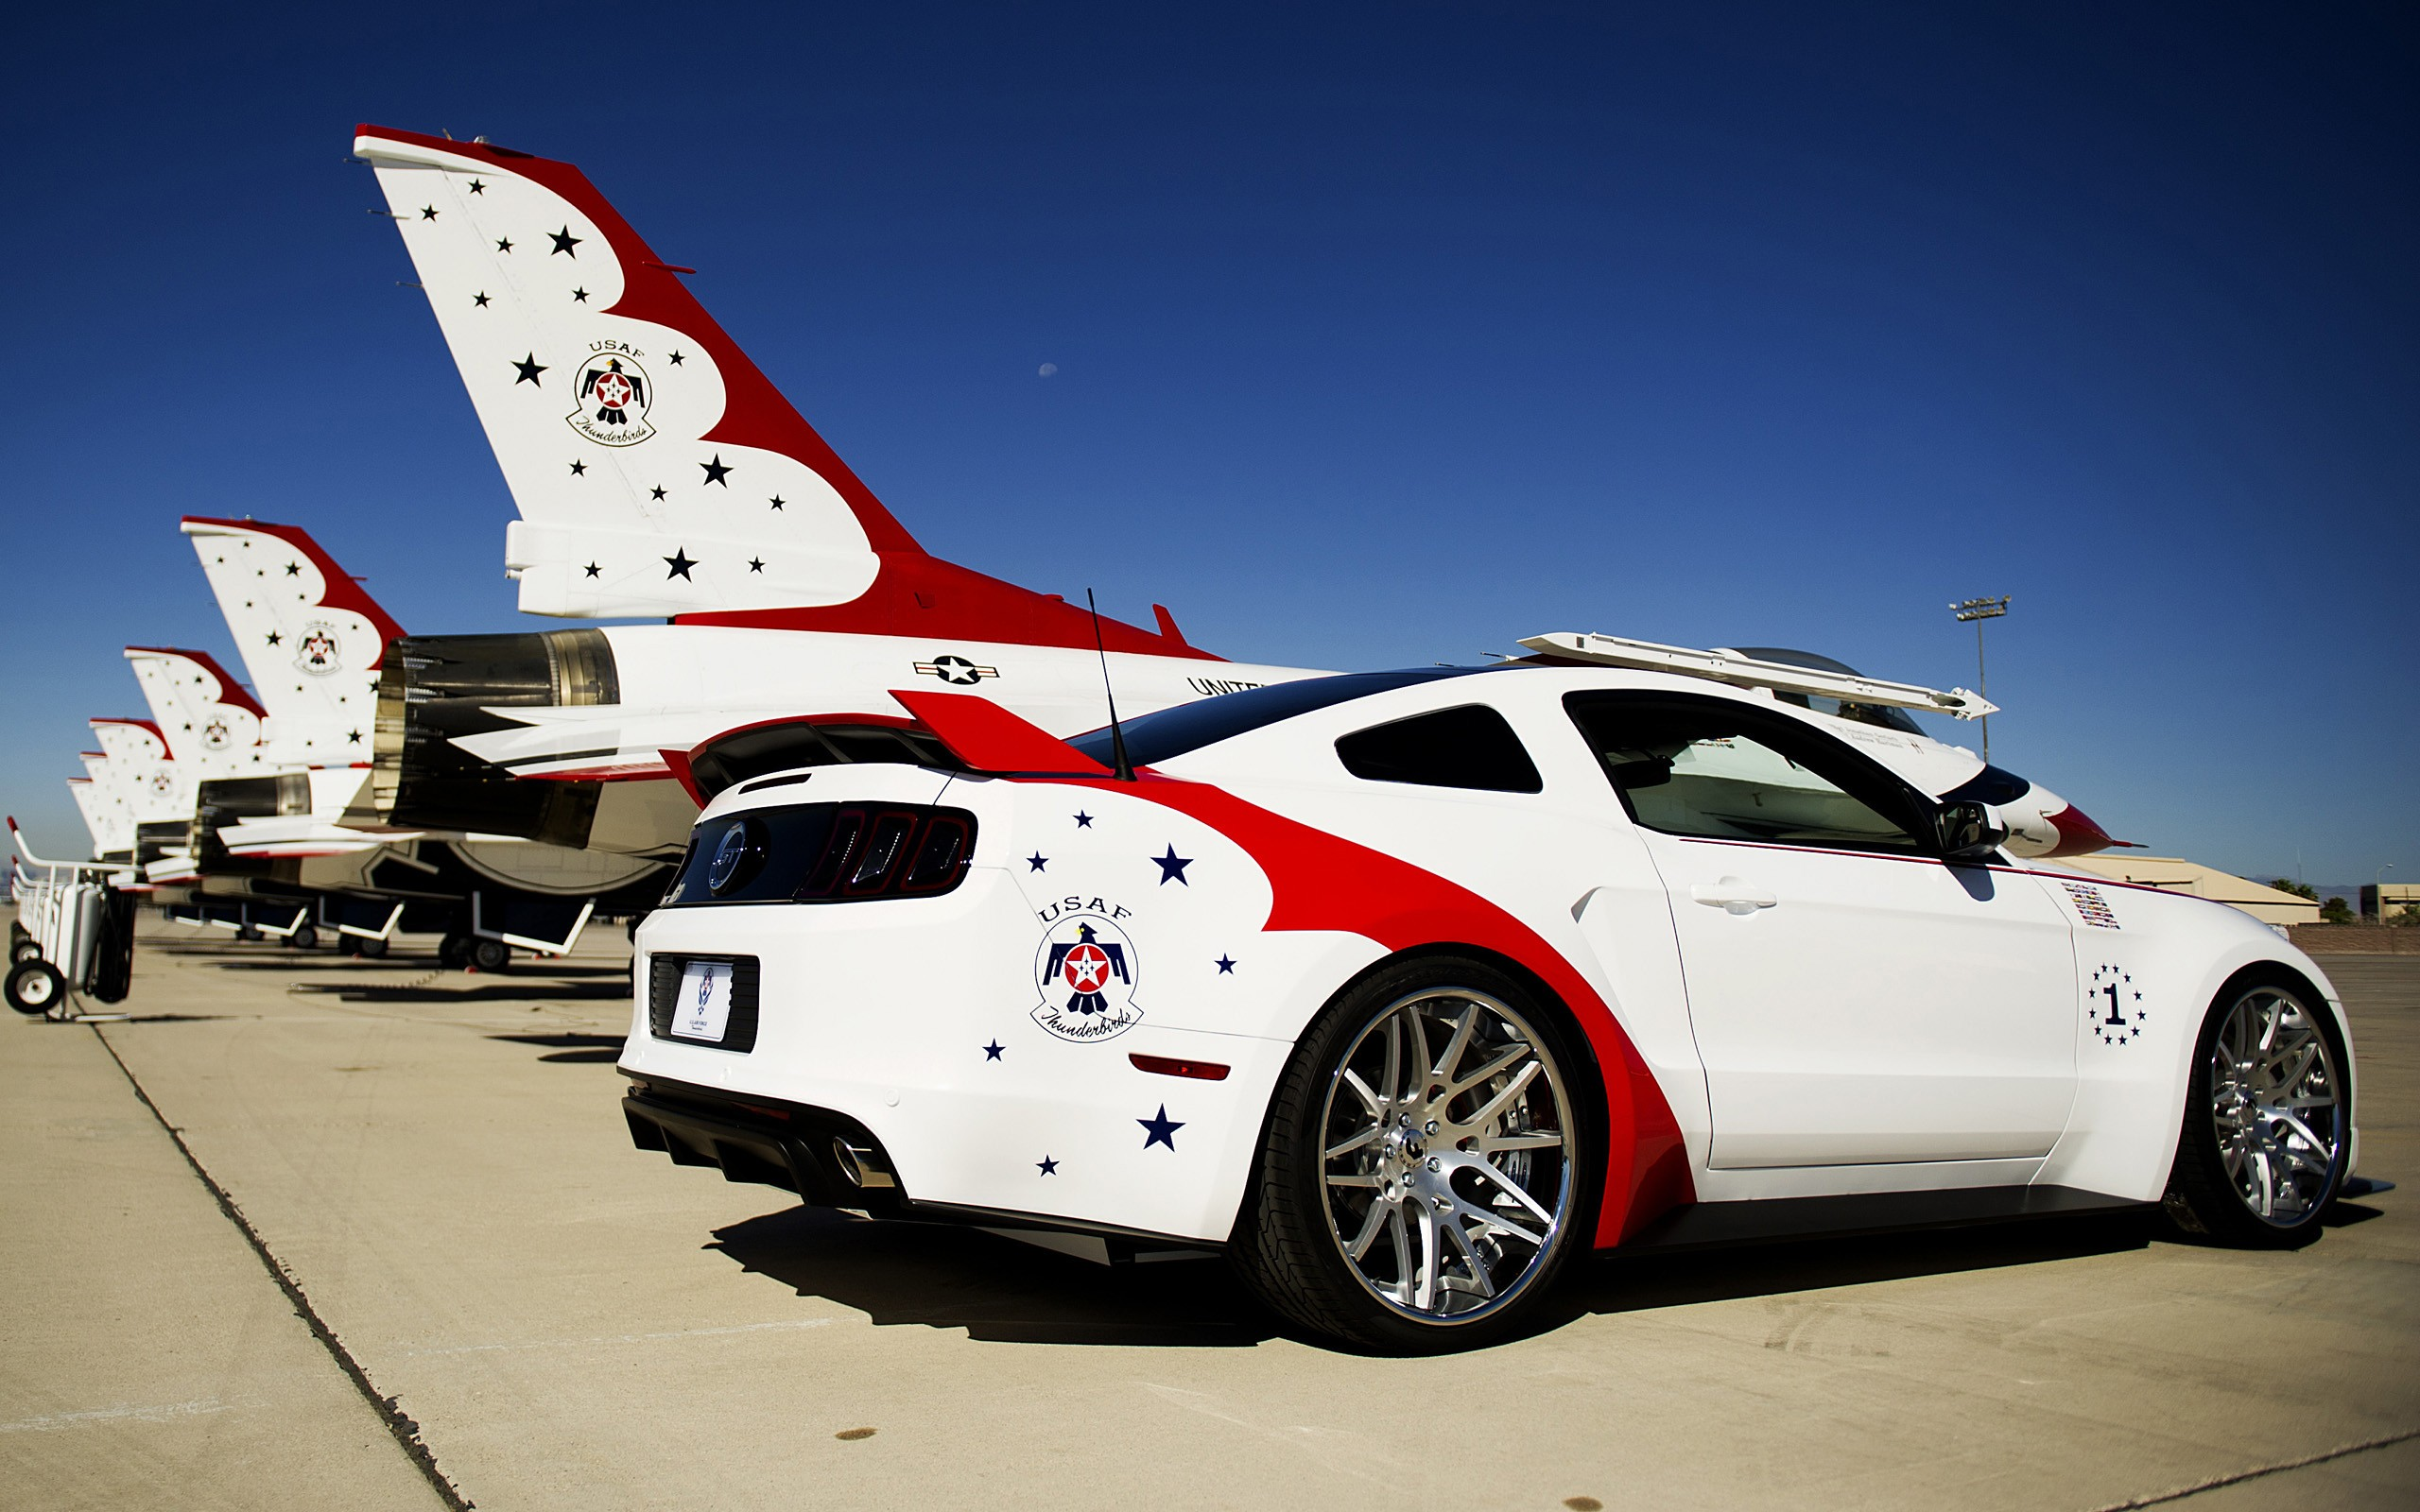 Ford Mustang GT vs US Air Force - 2560x1600